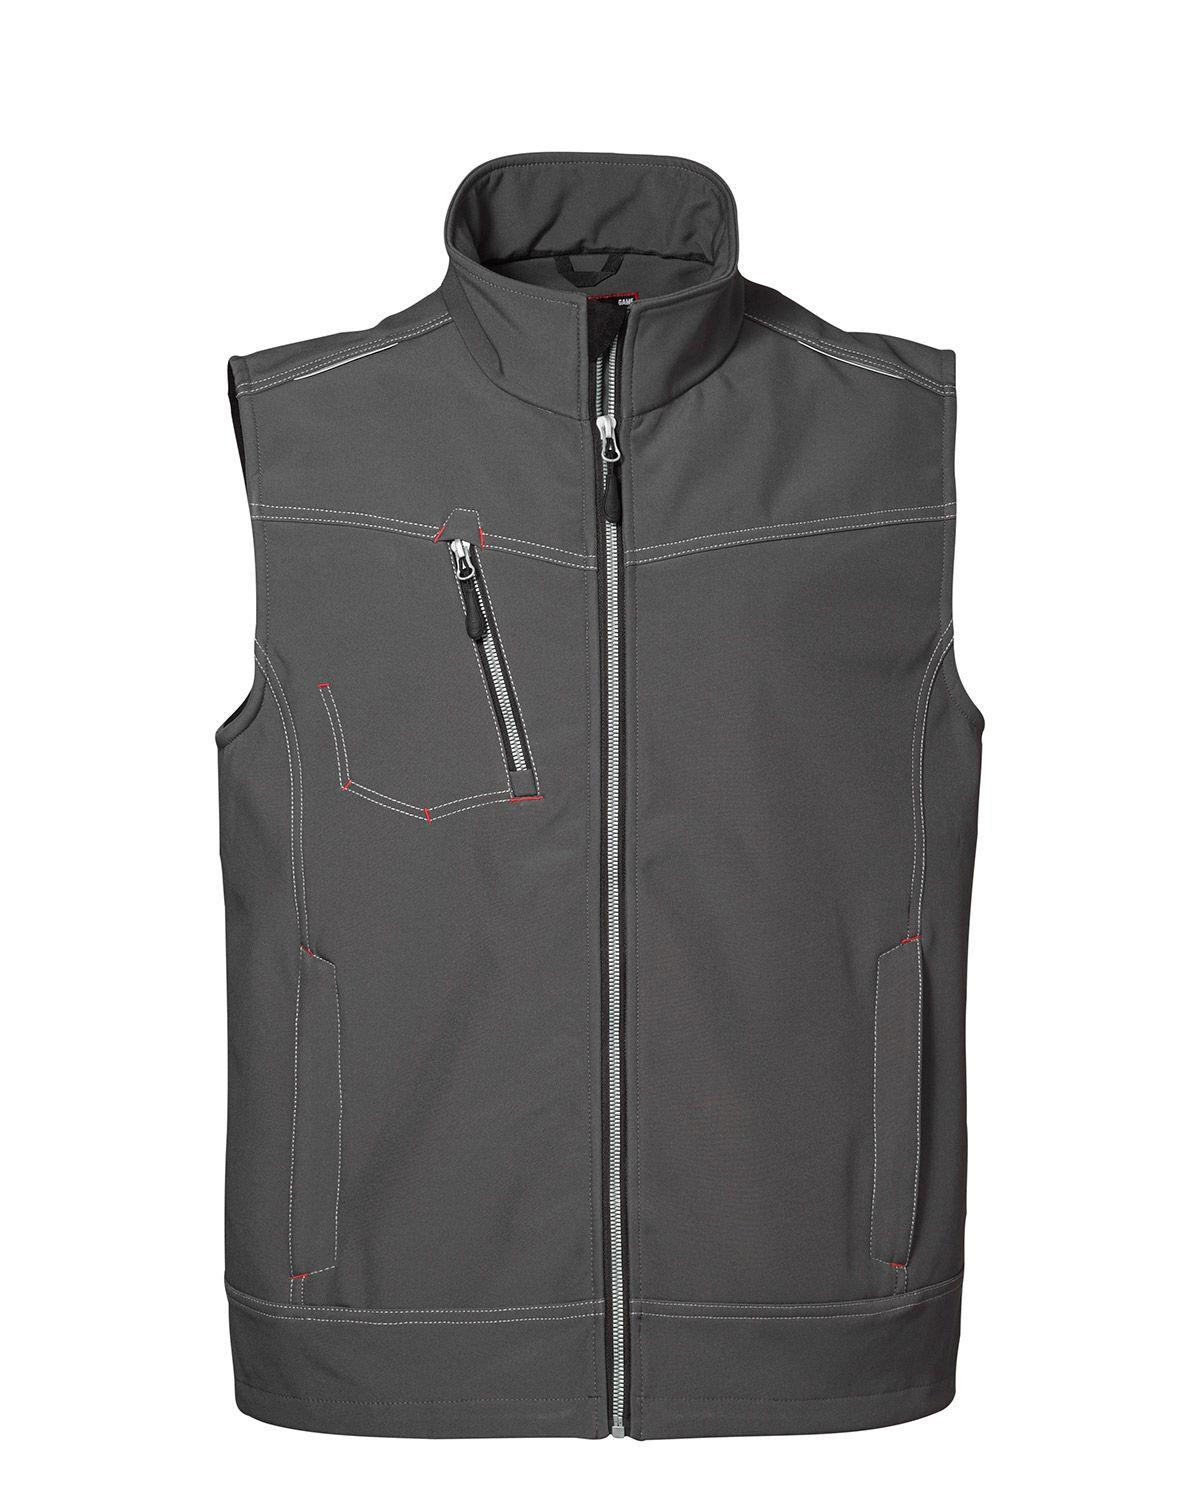 Image of   ID Softshell Vest (Sølv Grå, 3XL)